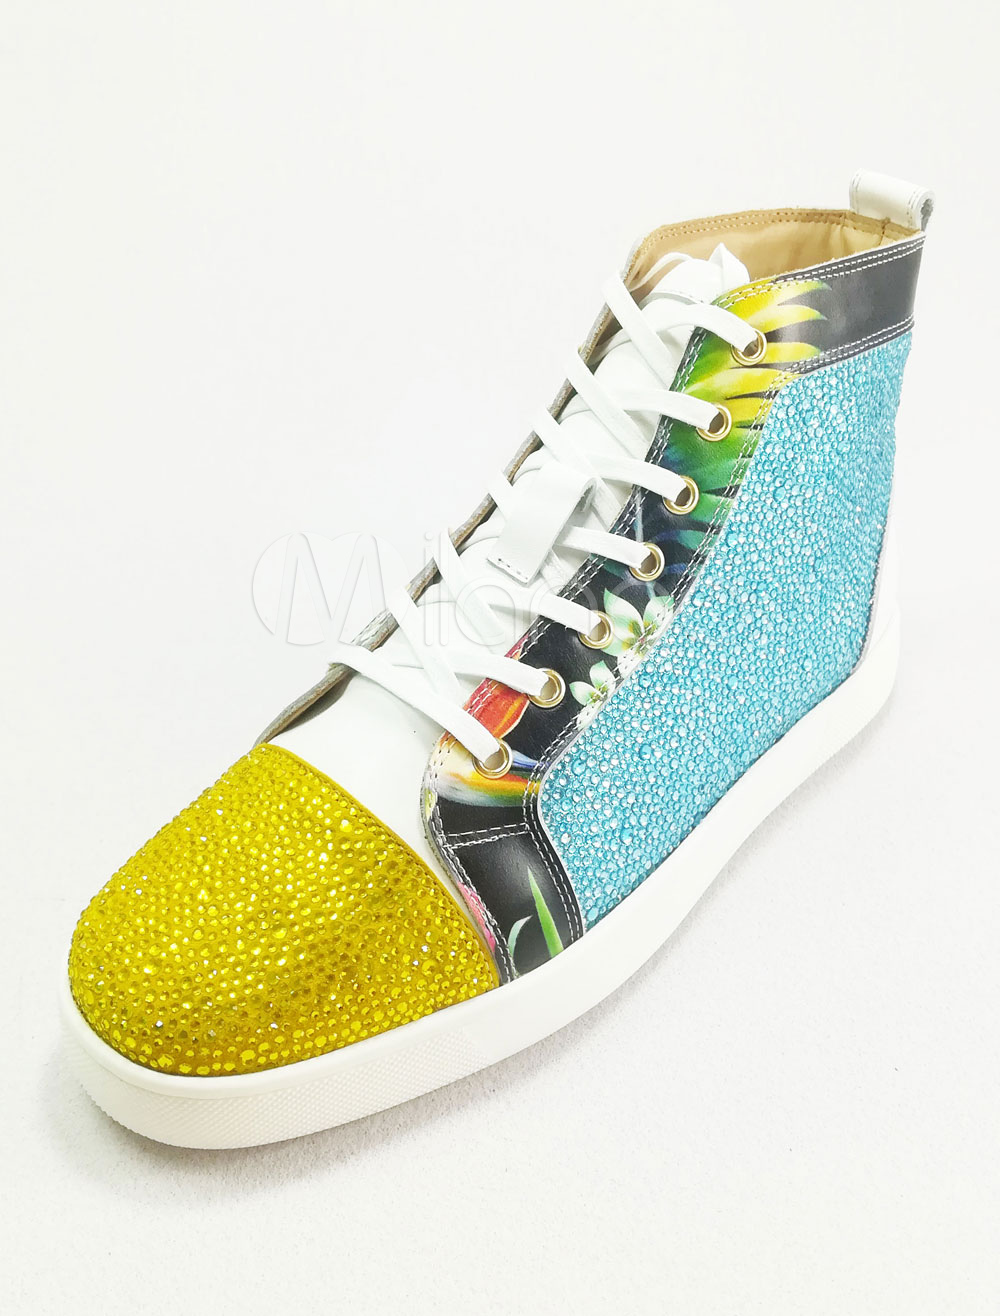 Men's Skate Shoes Leather Light Blue Round Toe Lace Up High Top Sneakers